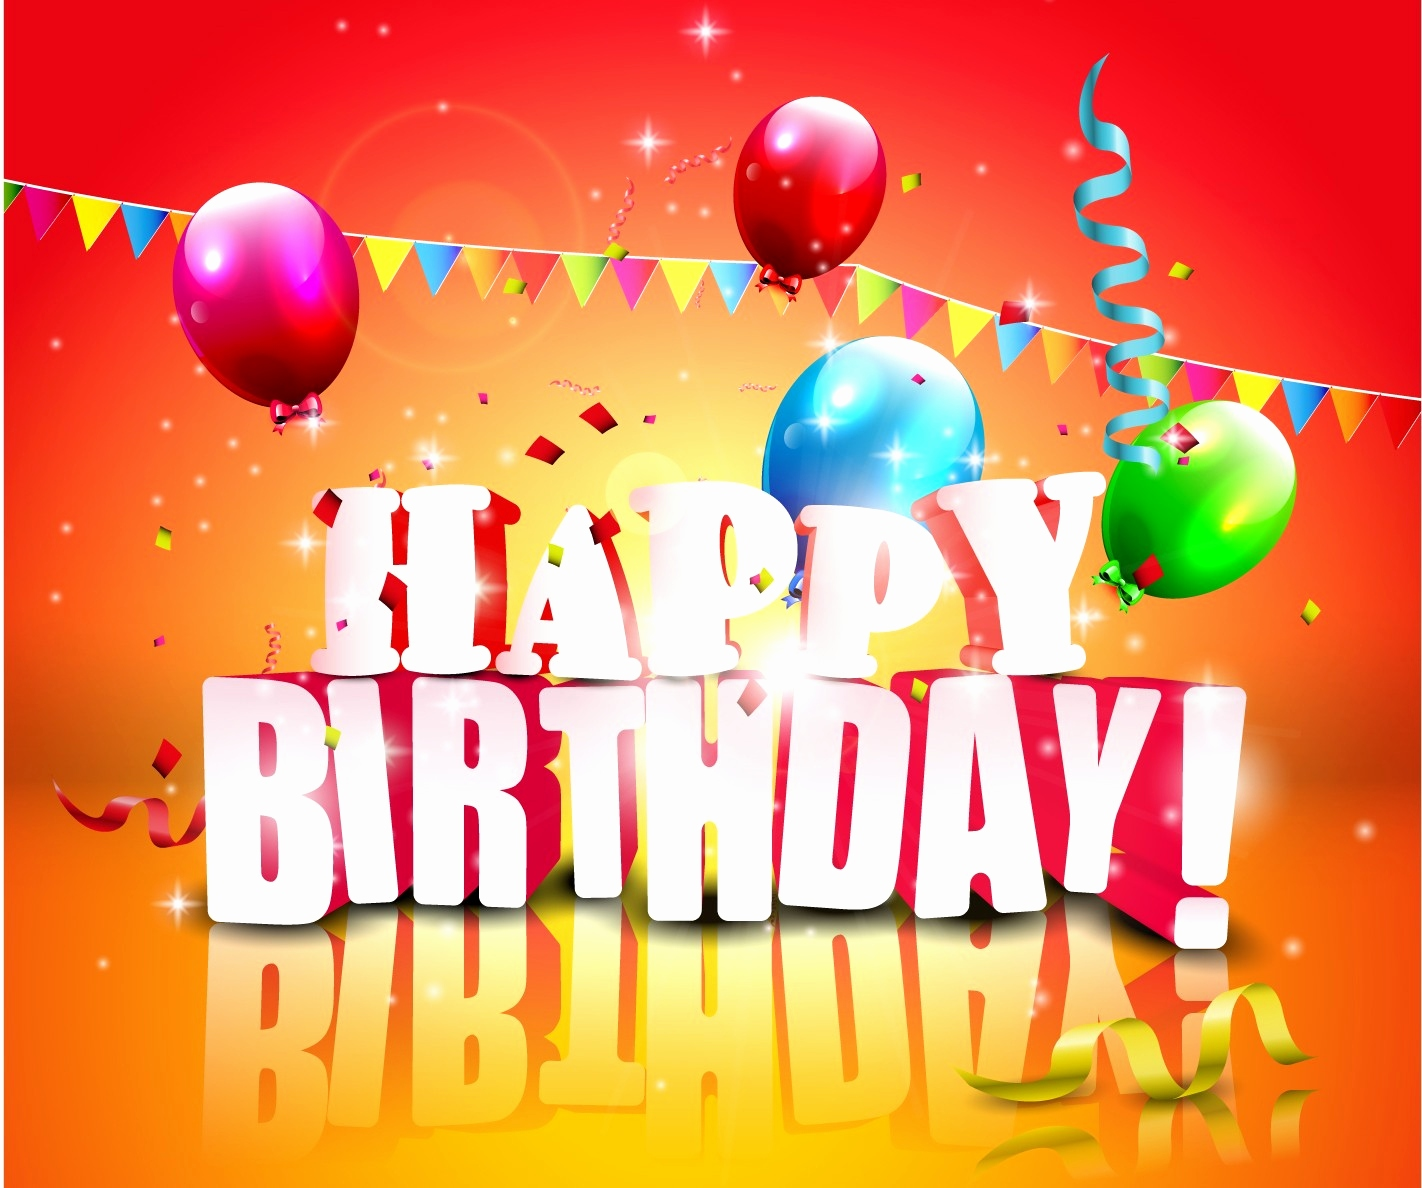 free birthday greeting cards to send by email ; free-greeting-cards-birthday-fresh-birthday-card-greeting-free-email-birthday-card-send-free-ecards-of-free-greeting-cards-birthday